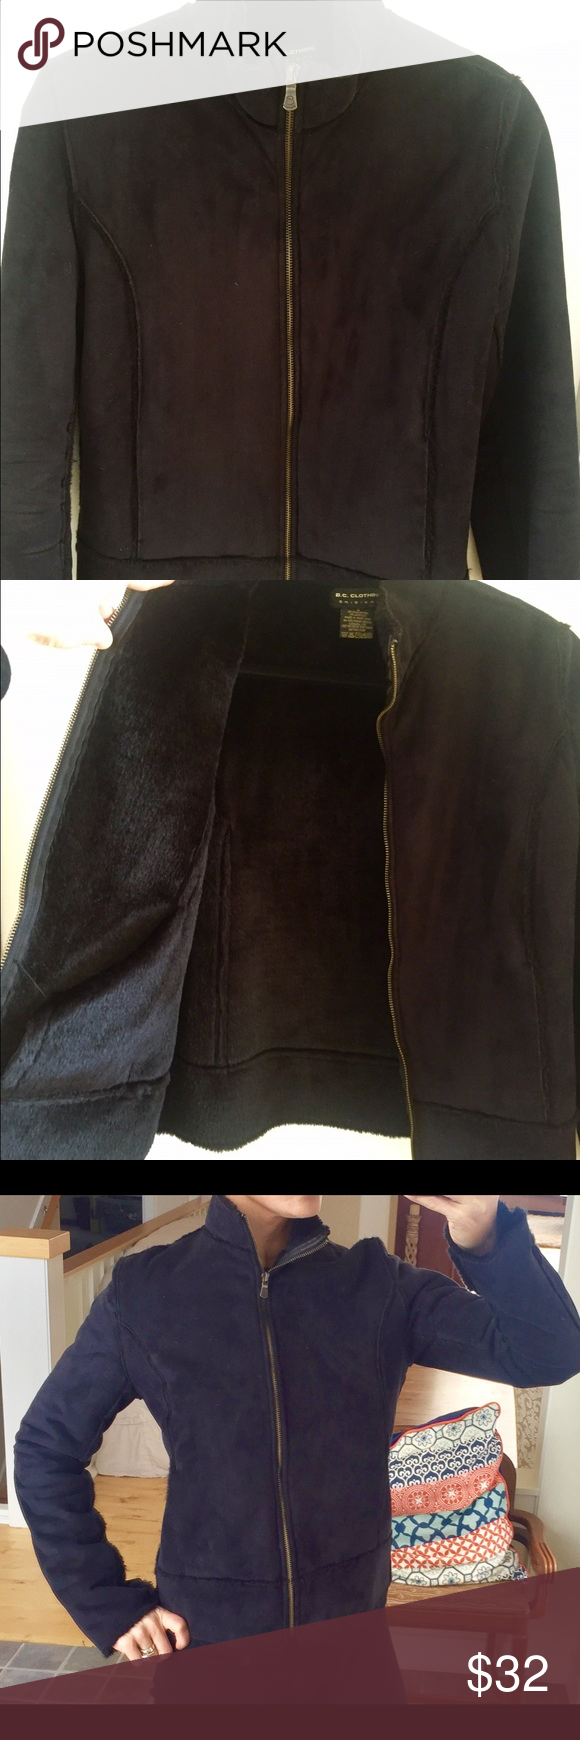 Warm suede/fur like jacket. This jacket is super warm. Wears well/sleek looking fit. Great dressed up or just with jeans. No damages noted to jacket BC Clothing Original  Jackets & Coats